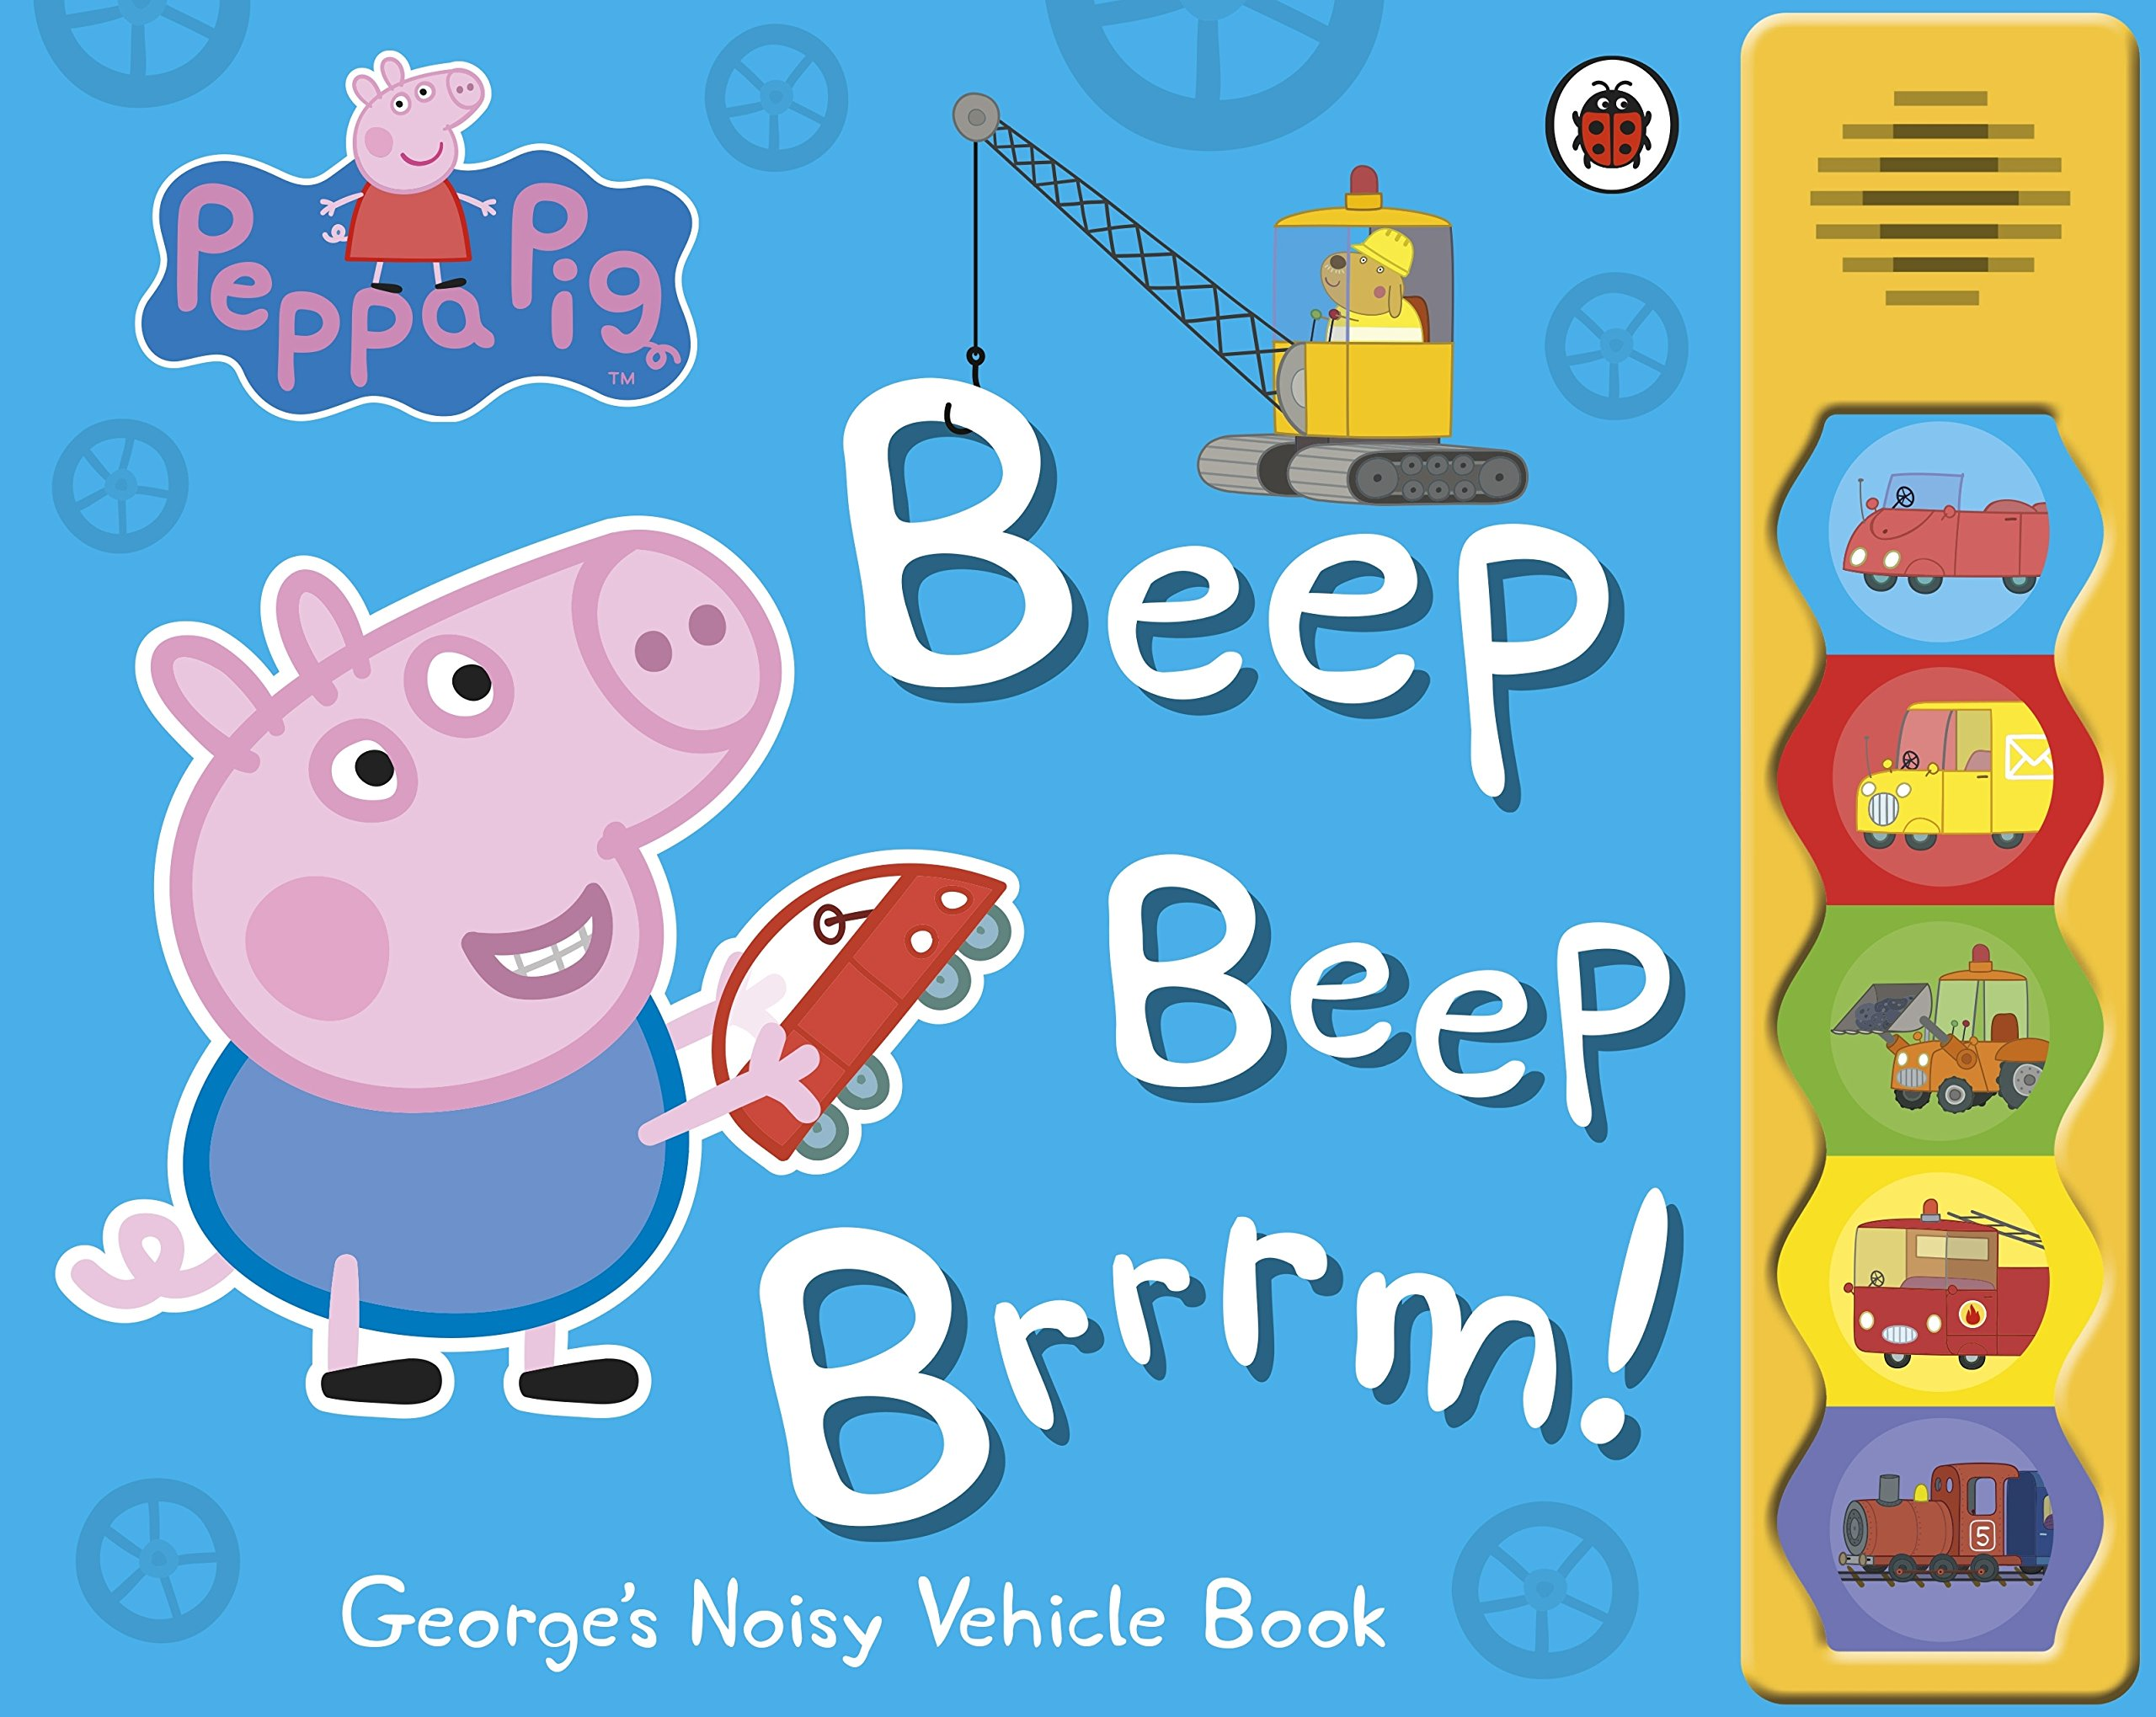 Details about Peppa Pig: Beep beep brrrm! Children's Sound Effects Story  Book, Ladybird